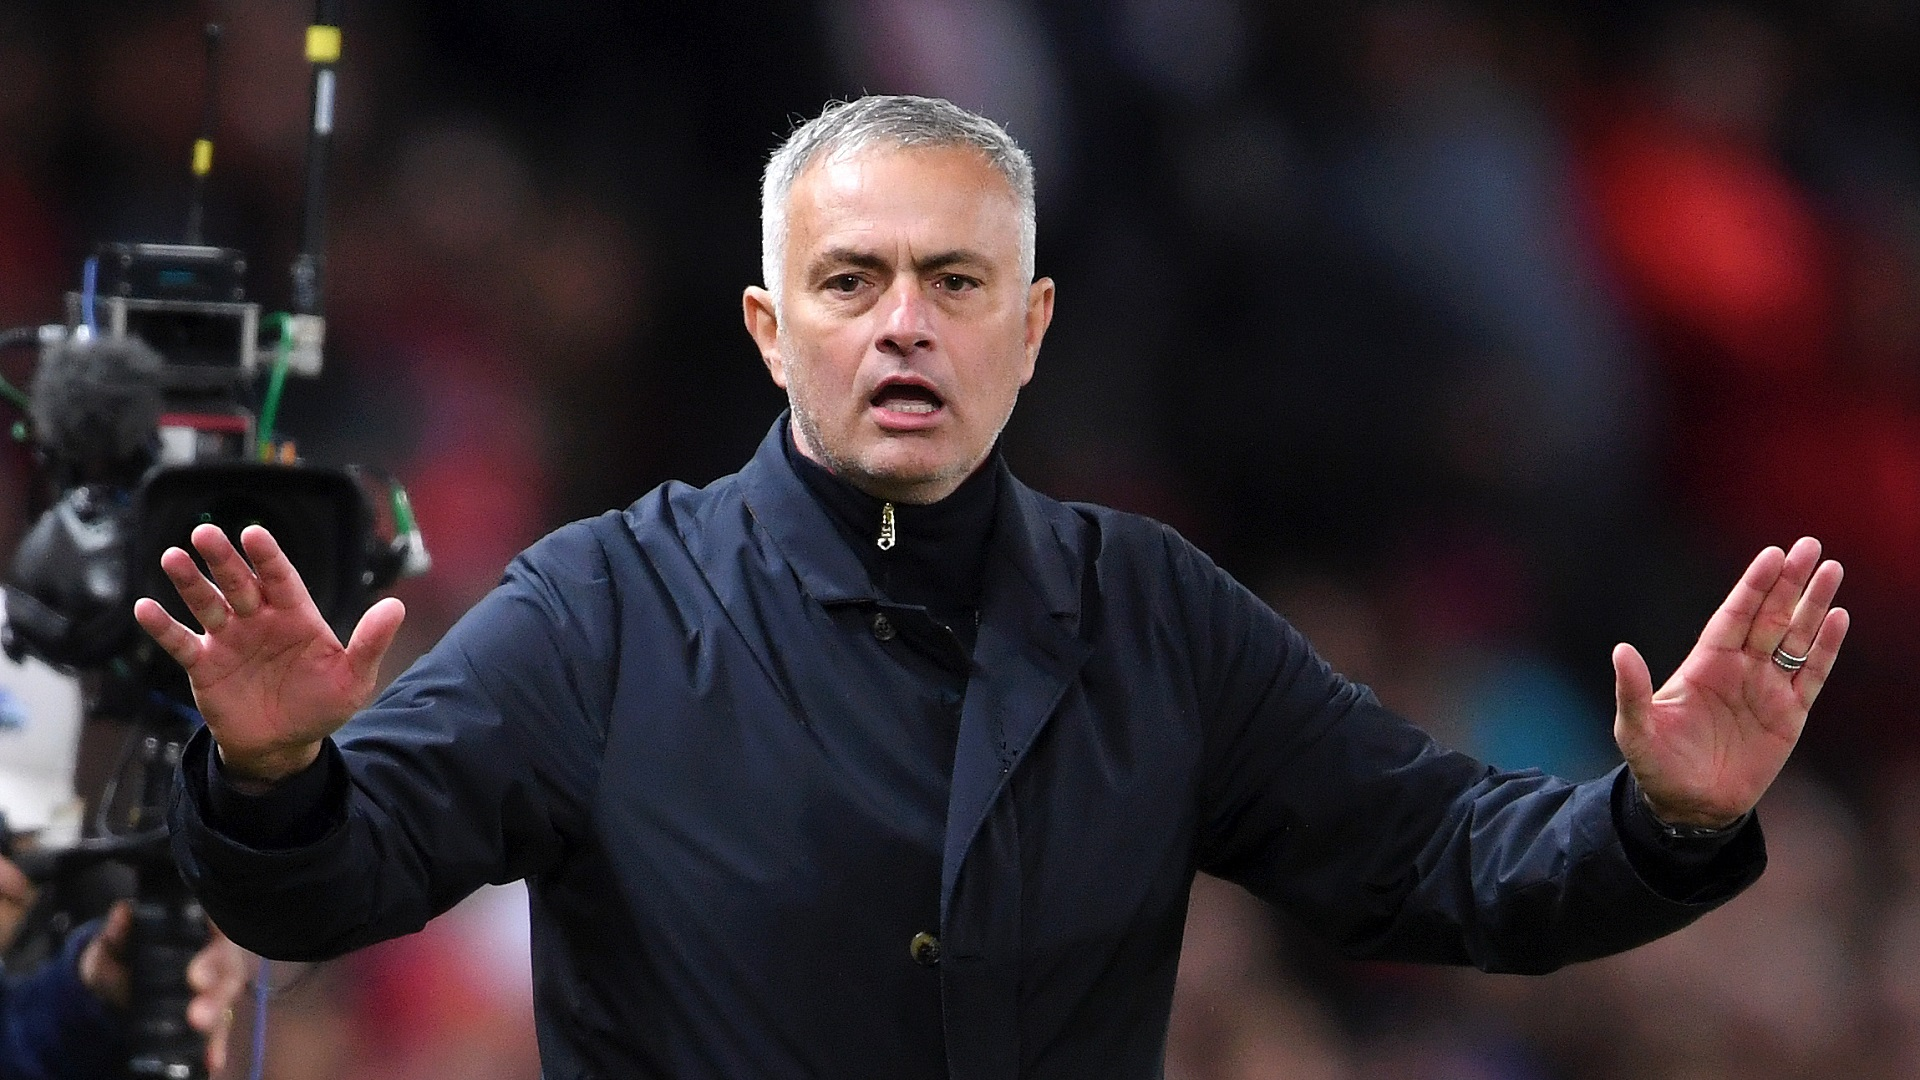 Mourinho Comments On Reports He'd Be Sacked